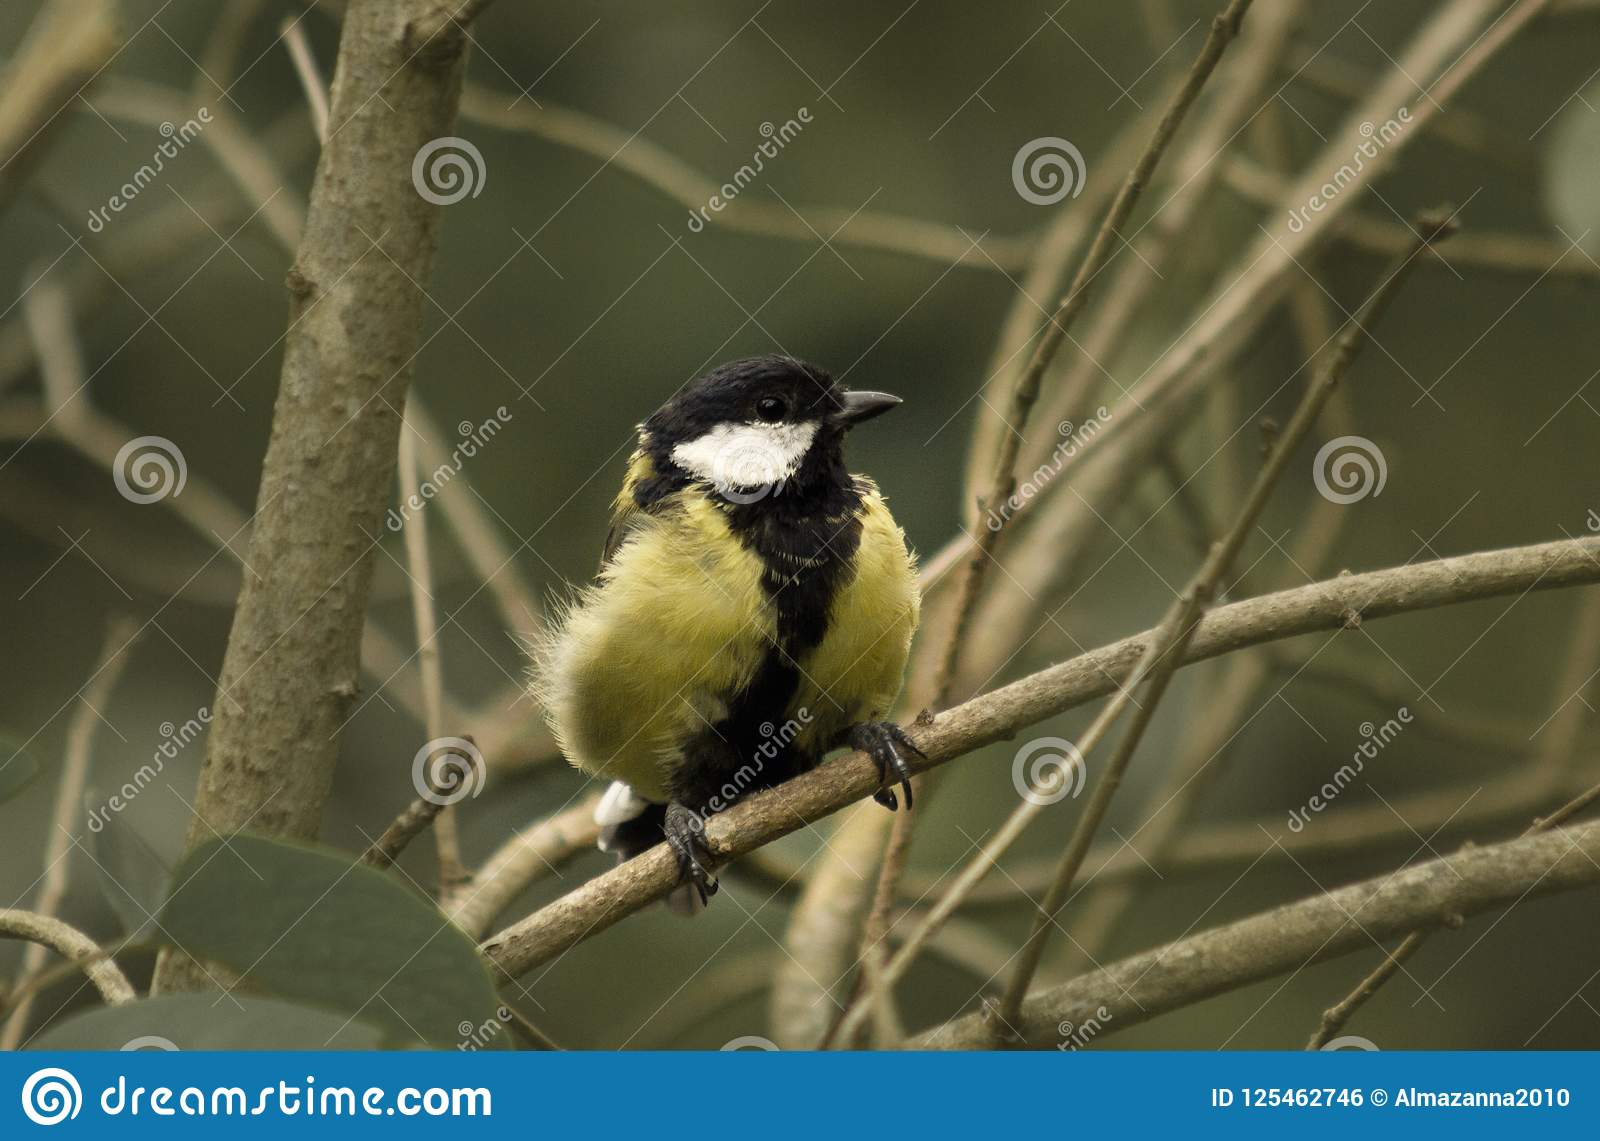 A bird, a yellow tit sat on branches